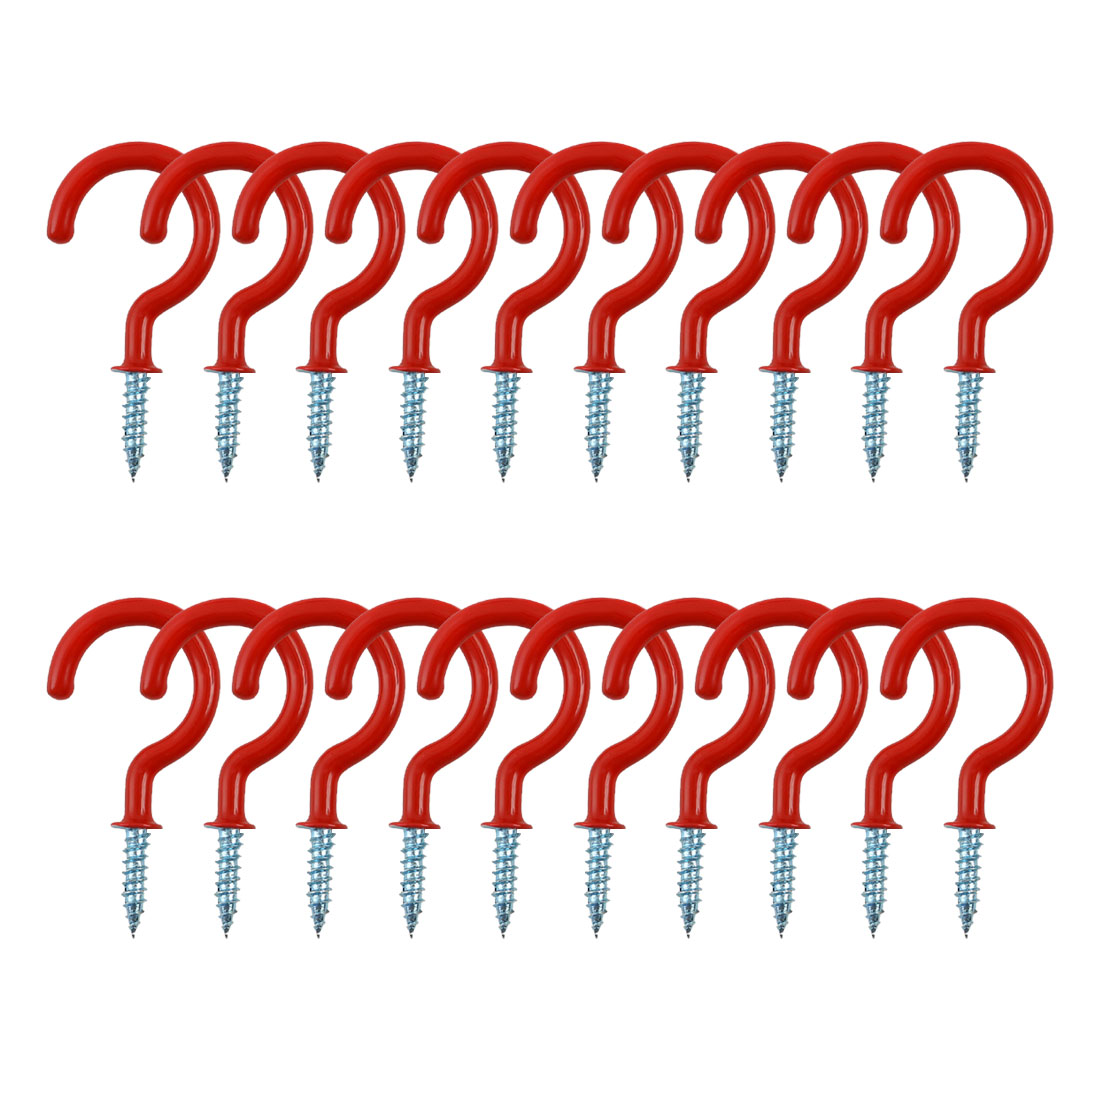 20pcs Cup Ceiling Hooks 1 Inch Metal with Vinyl Coated Screw in Holder Red